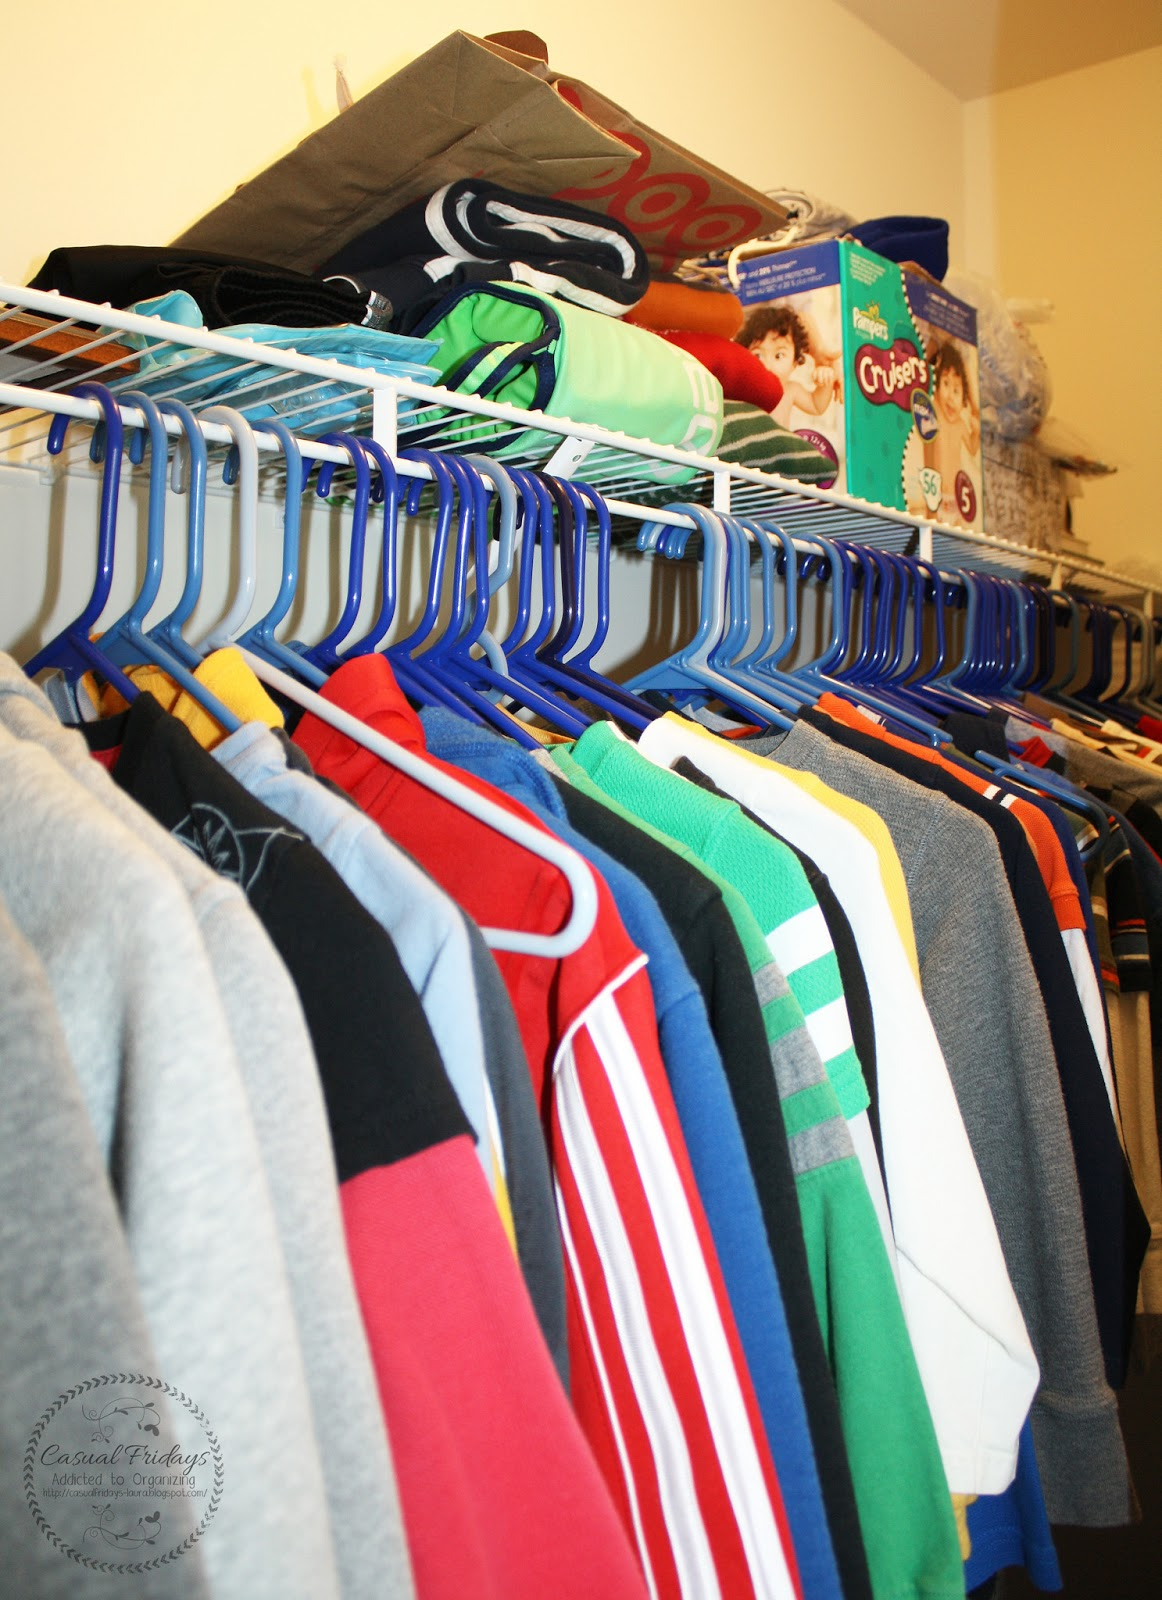 I Need To Have My Boys And My Clothes Organized By Sleeve Length And Color.  For Example My Closet Runs: No Sleeves, ...